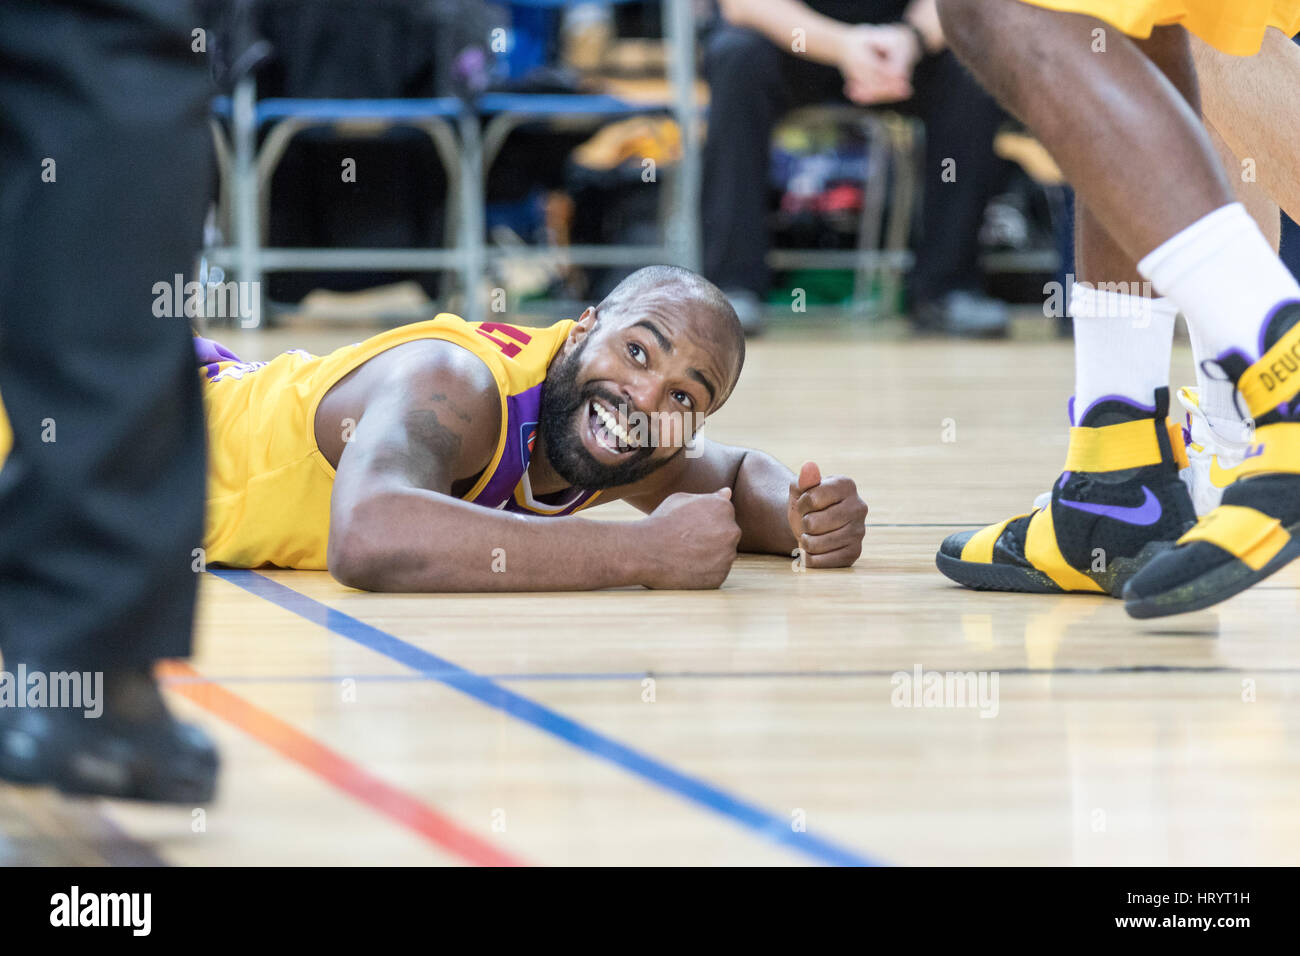 London, UK. 5th March, 2017. Leeds Force defeat  London Lions  92-81  at Copper box, Olympic Park, London. Lions' - Stock Image